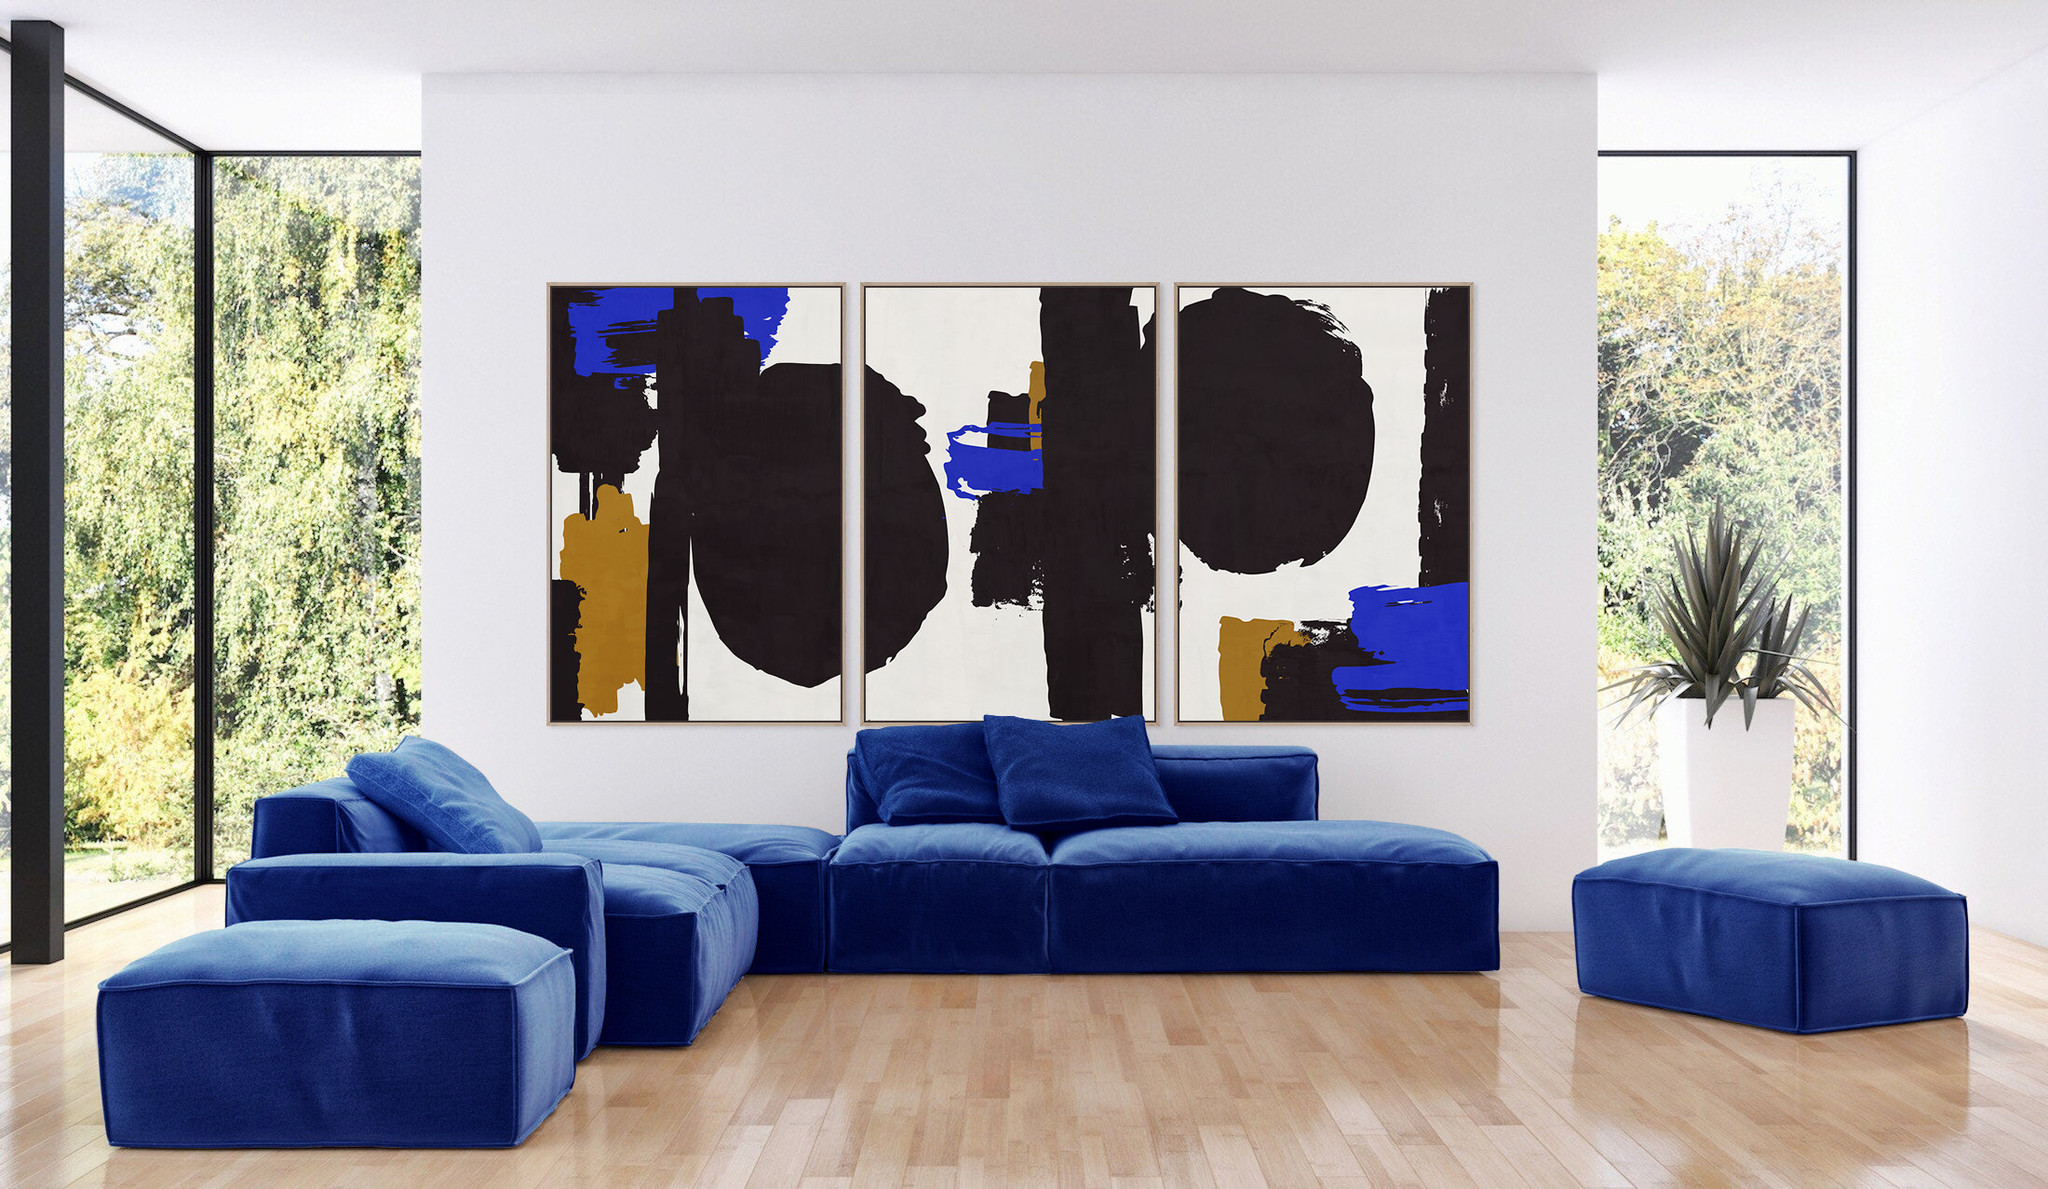 Diptychs and triptychs and the effect of large artwork in design spaces